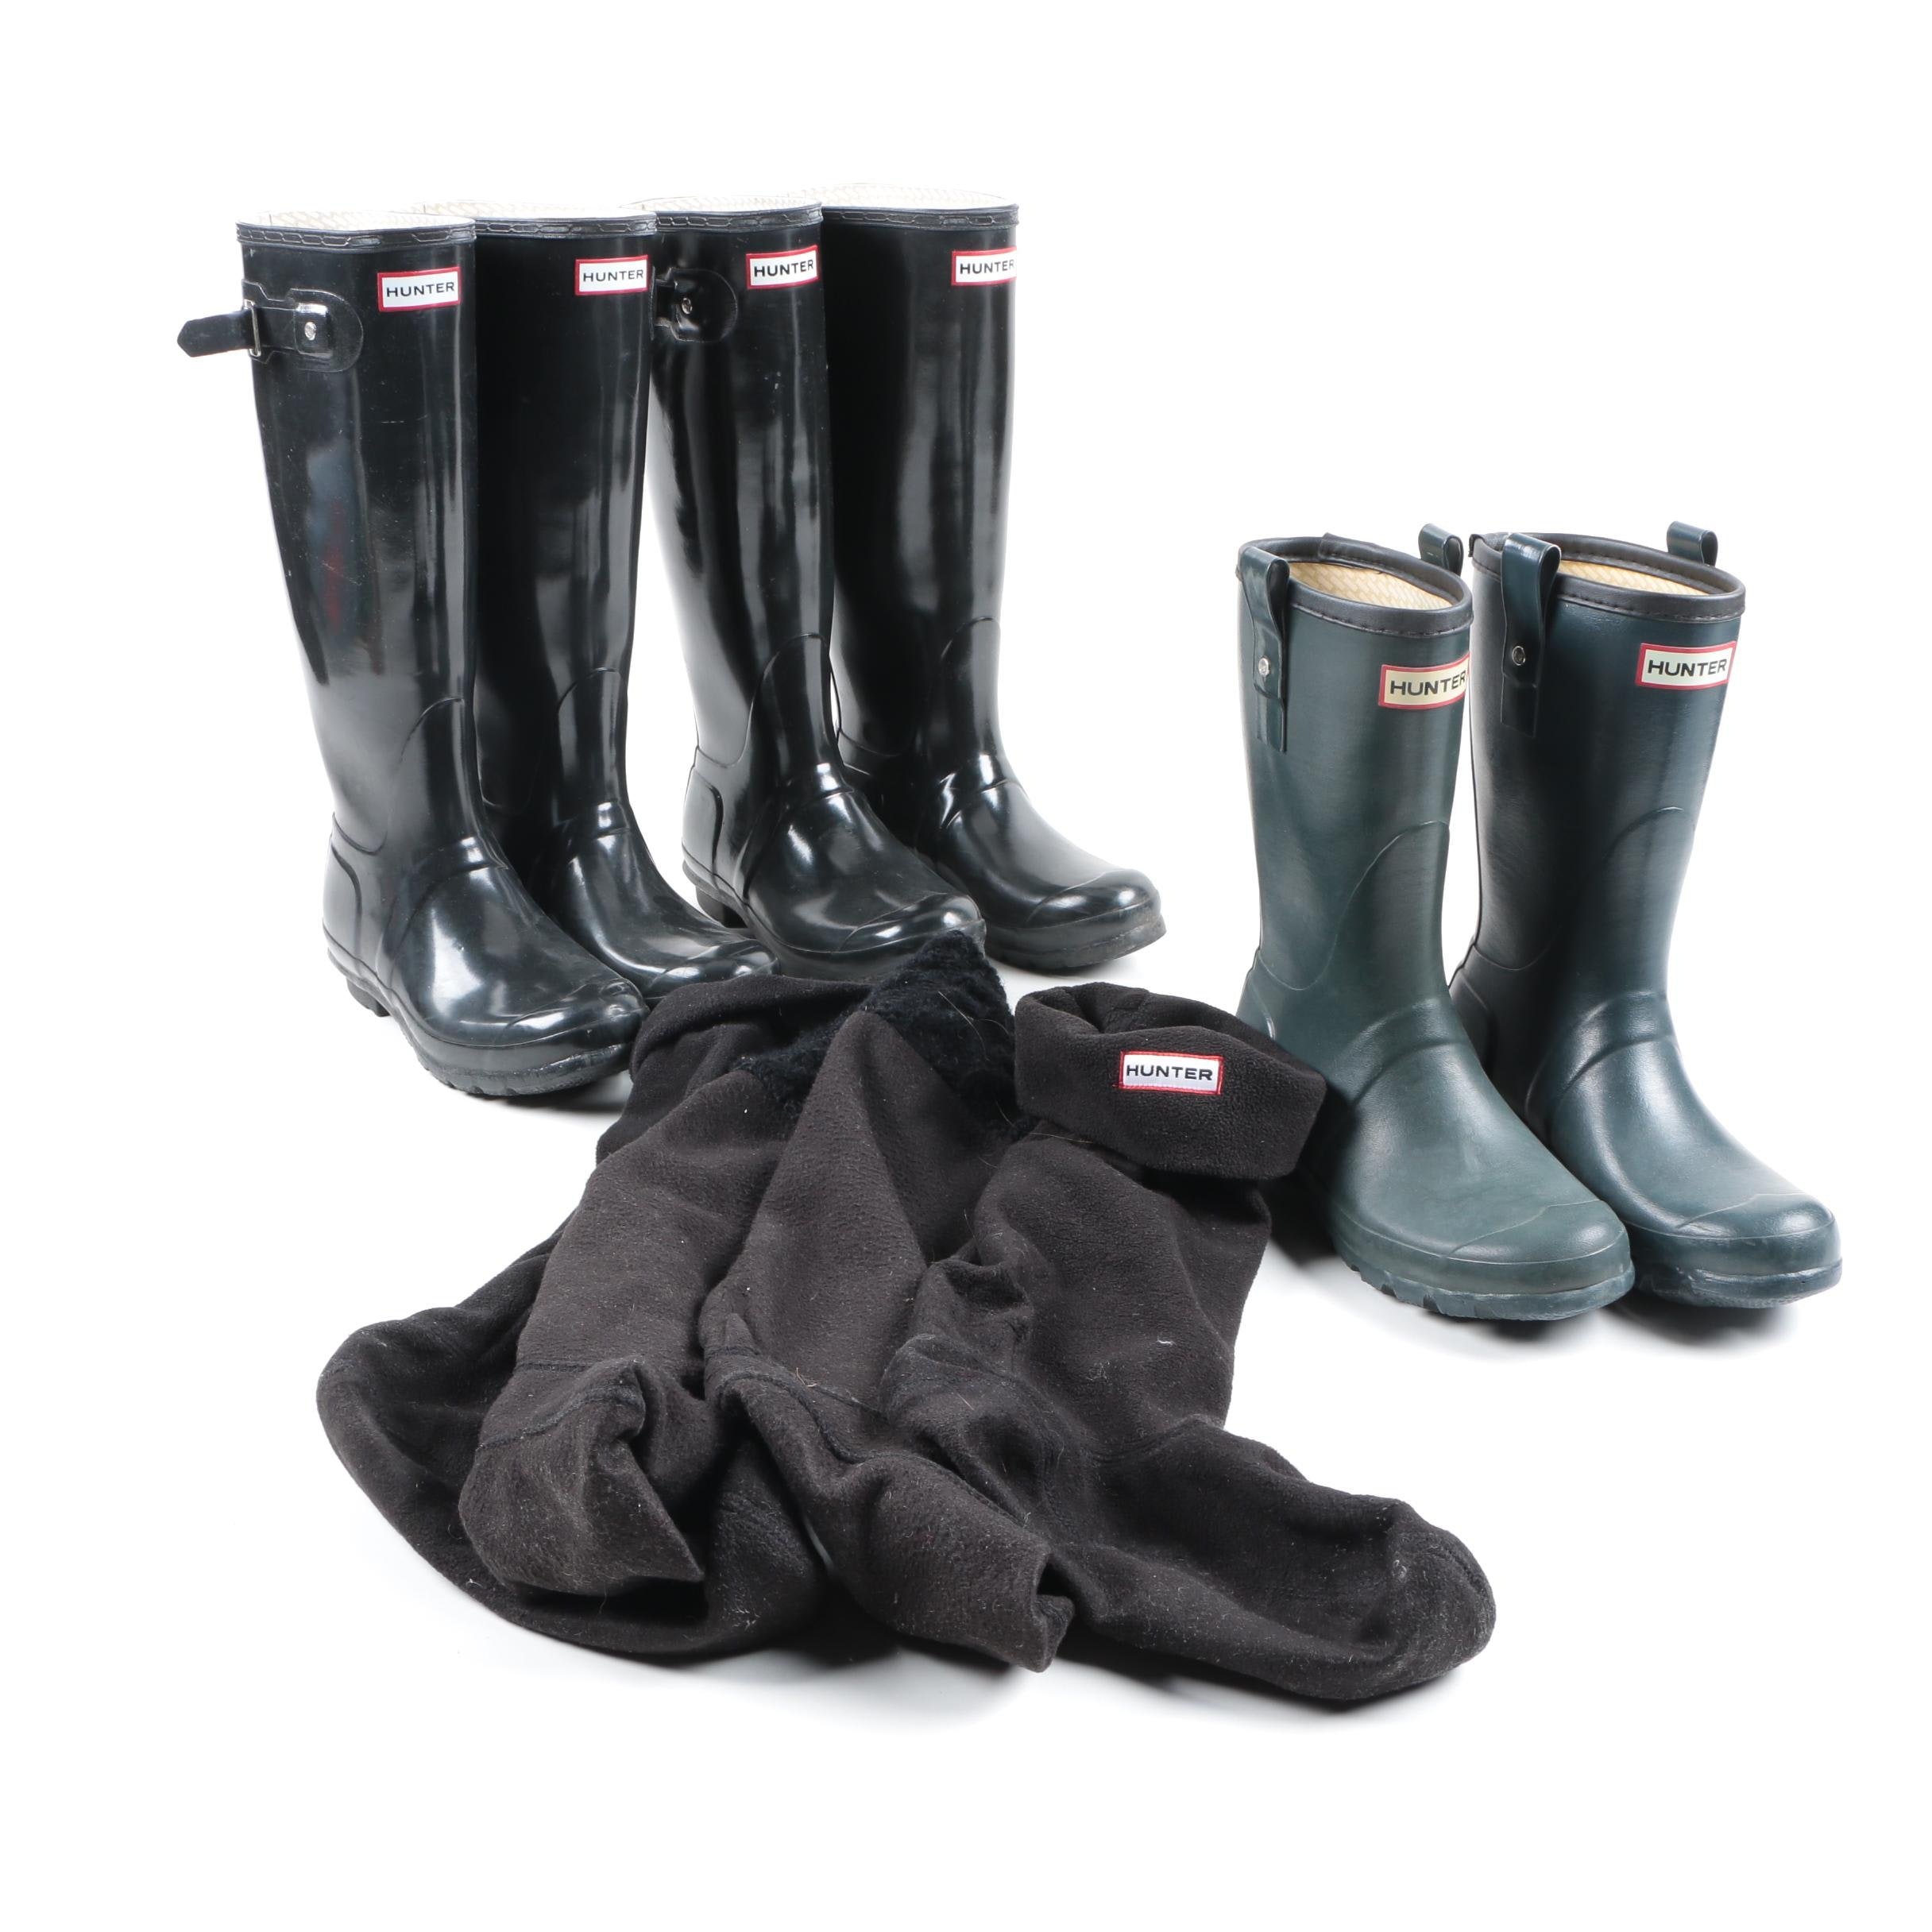 Women's Hunter Rain Boot's and Boot Socks